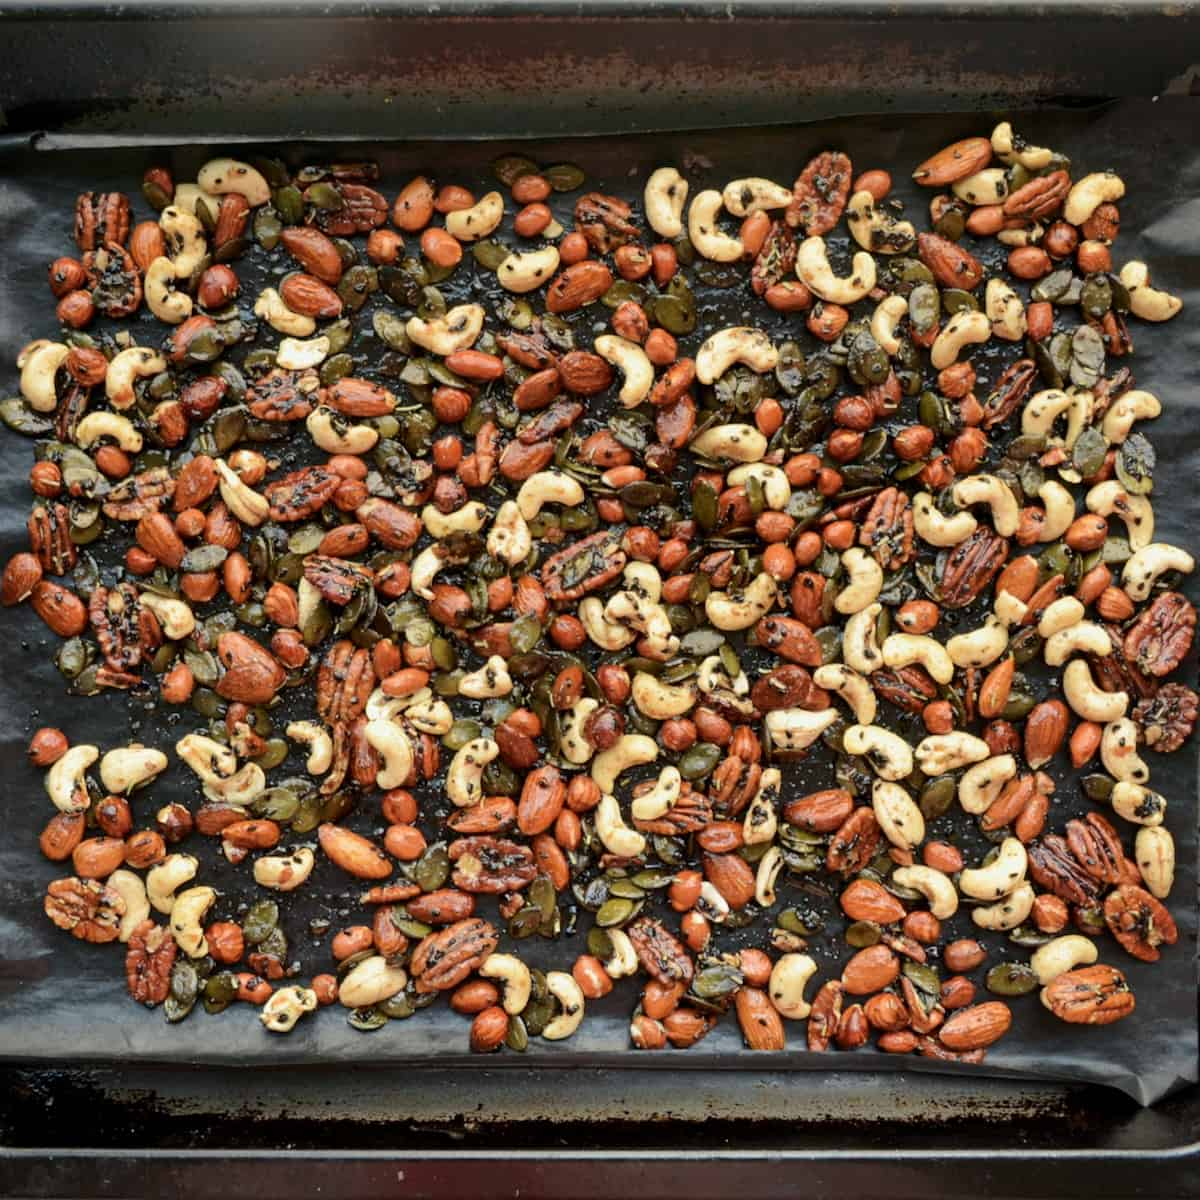 The nuts spread out on a lined baking tray.